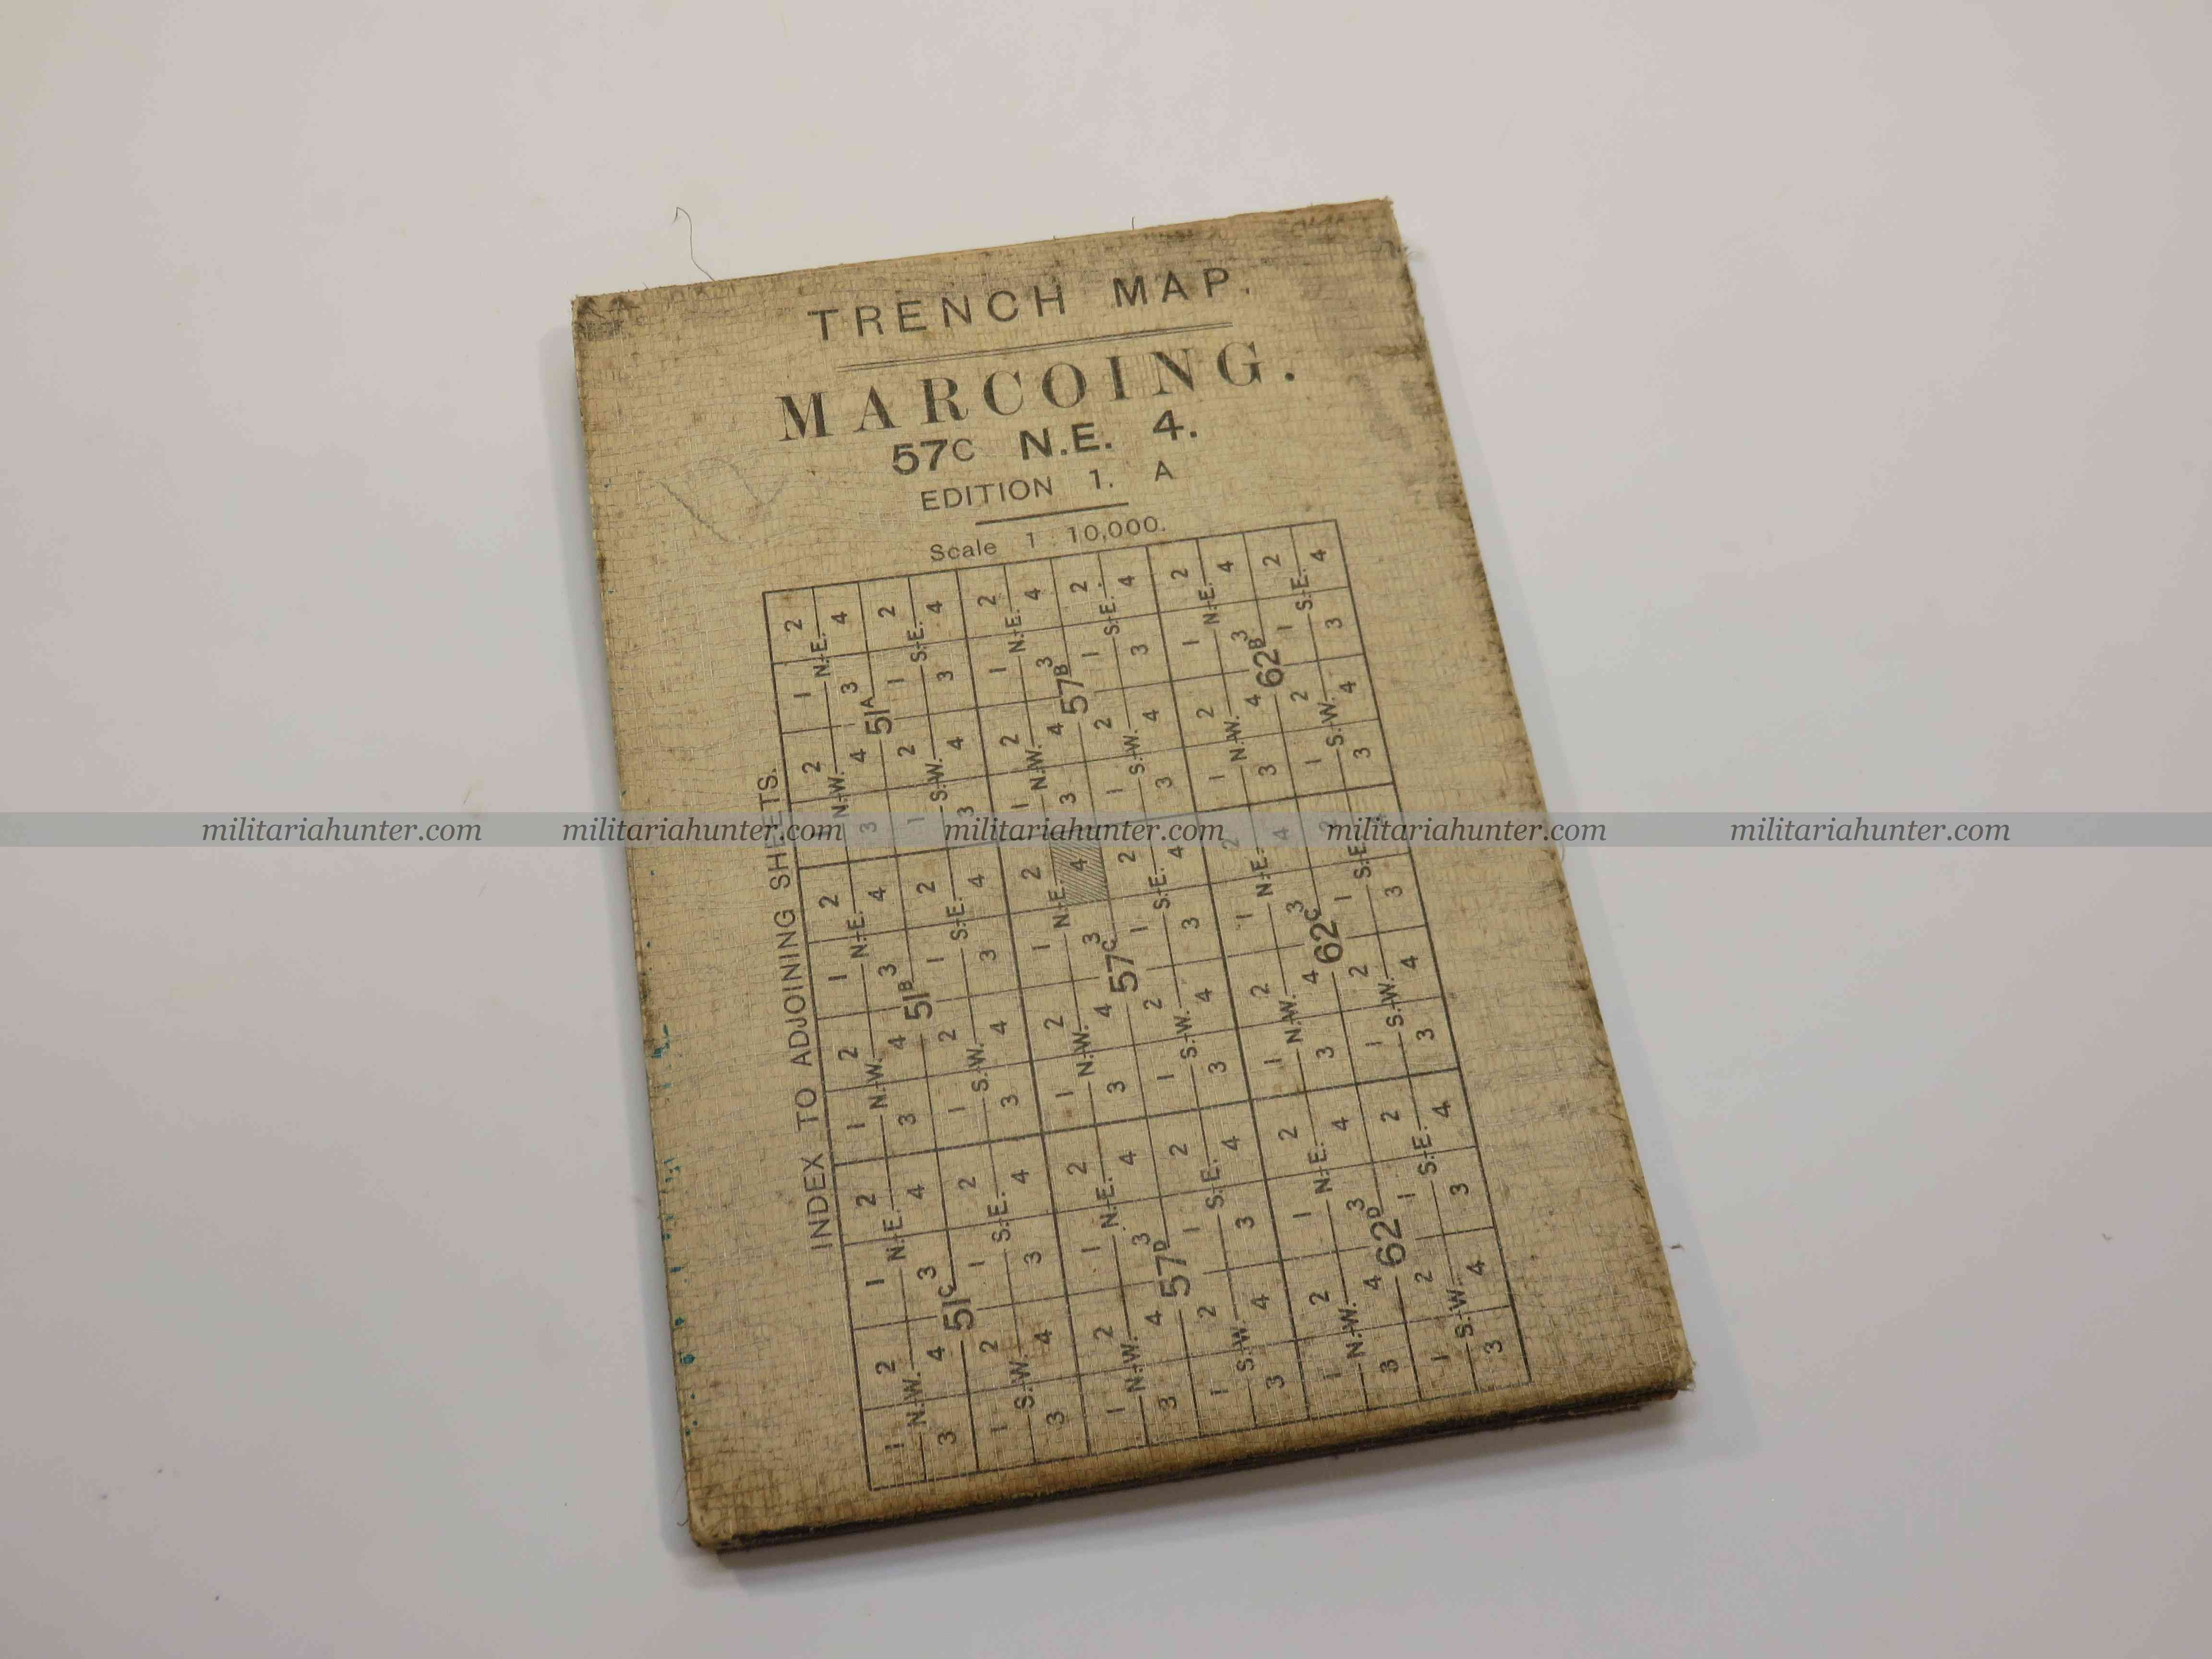 militaria : ww1 1:10000 trench map Marcoing 57C NE4 edition 1A 6 march 1917